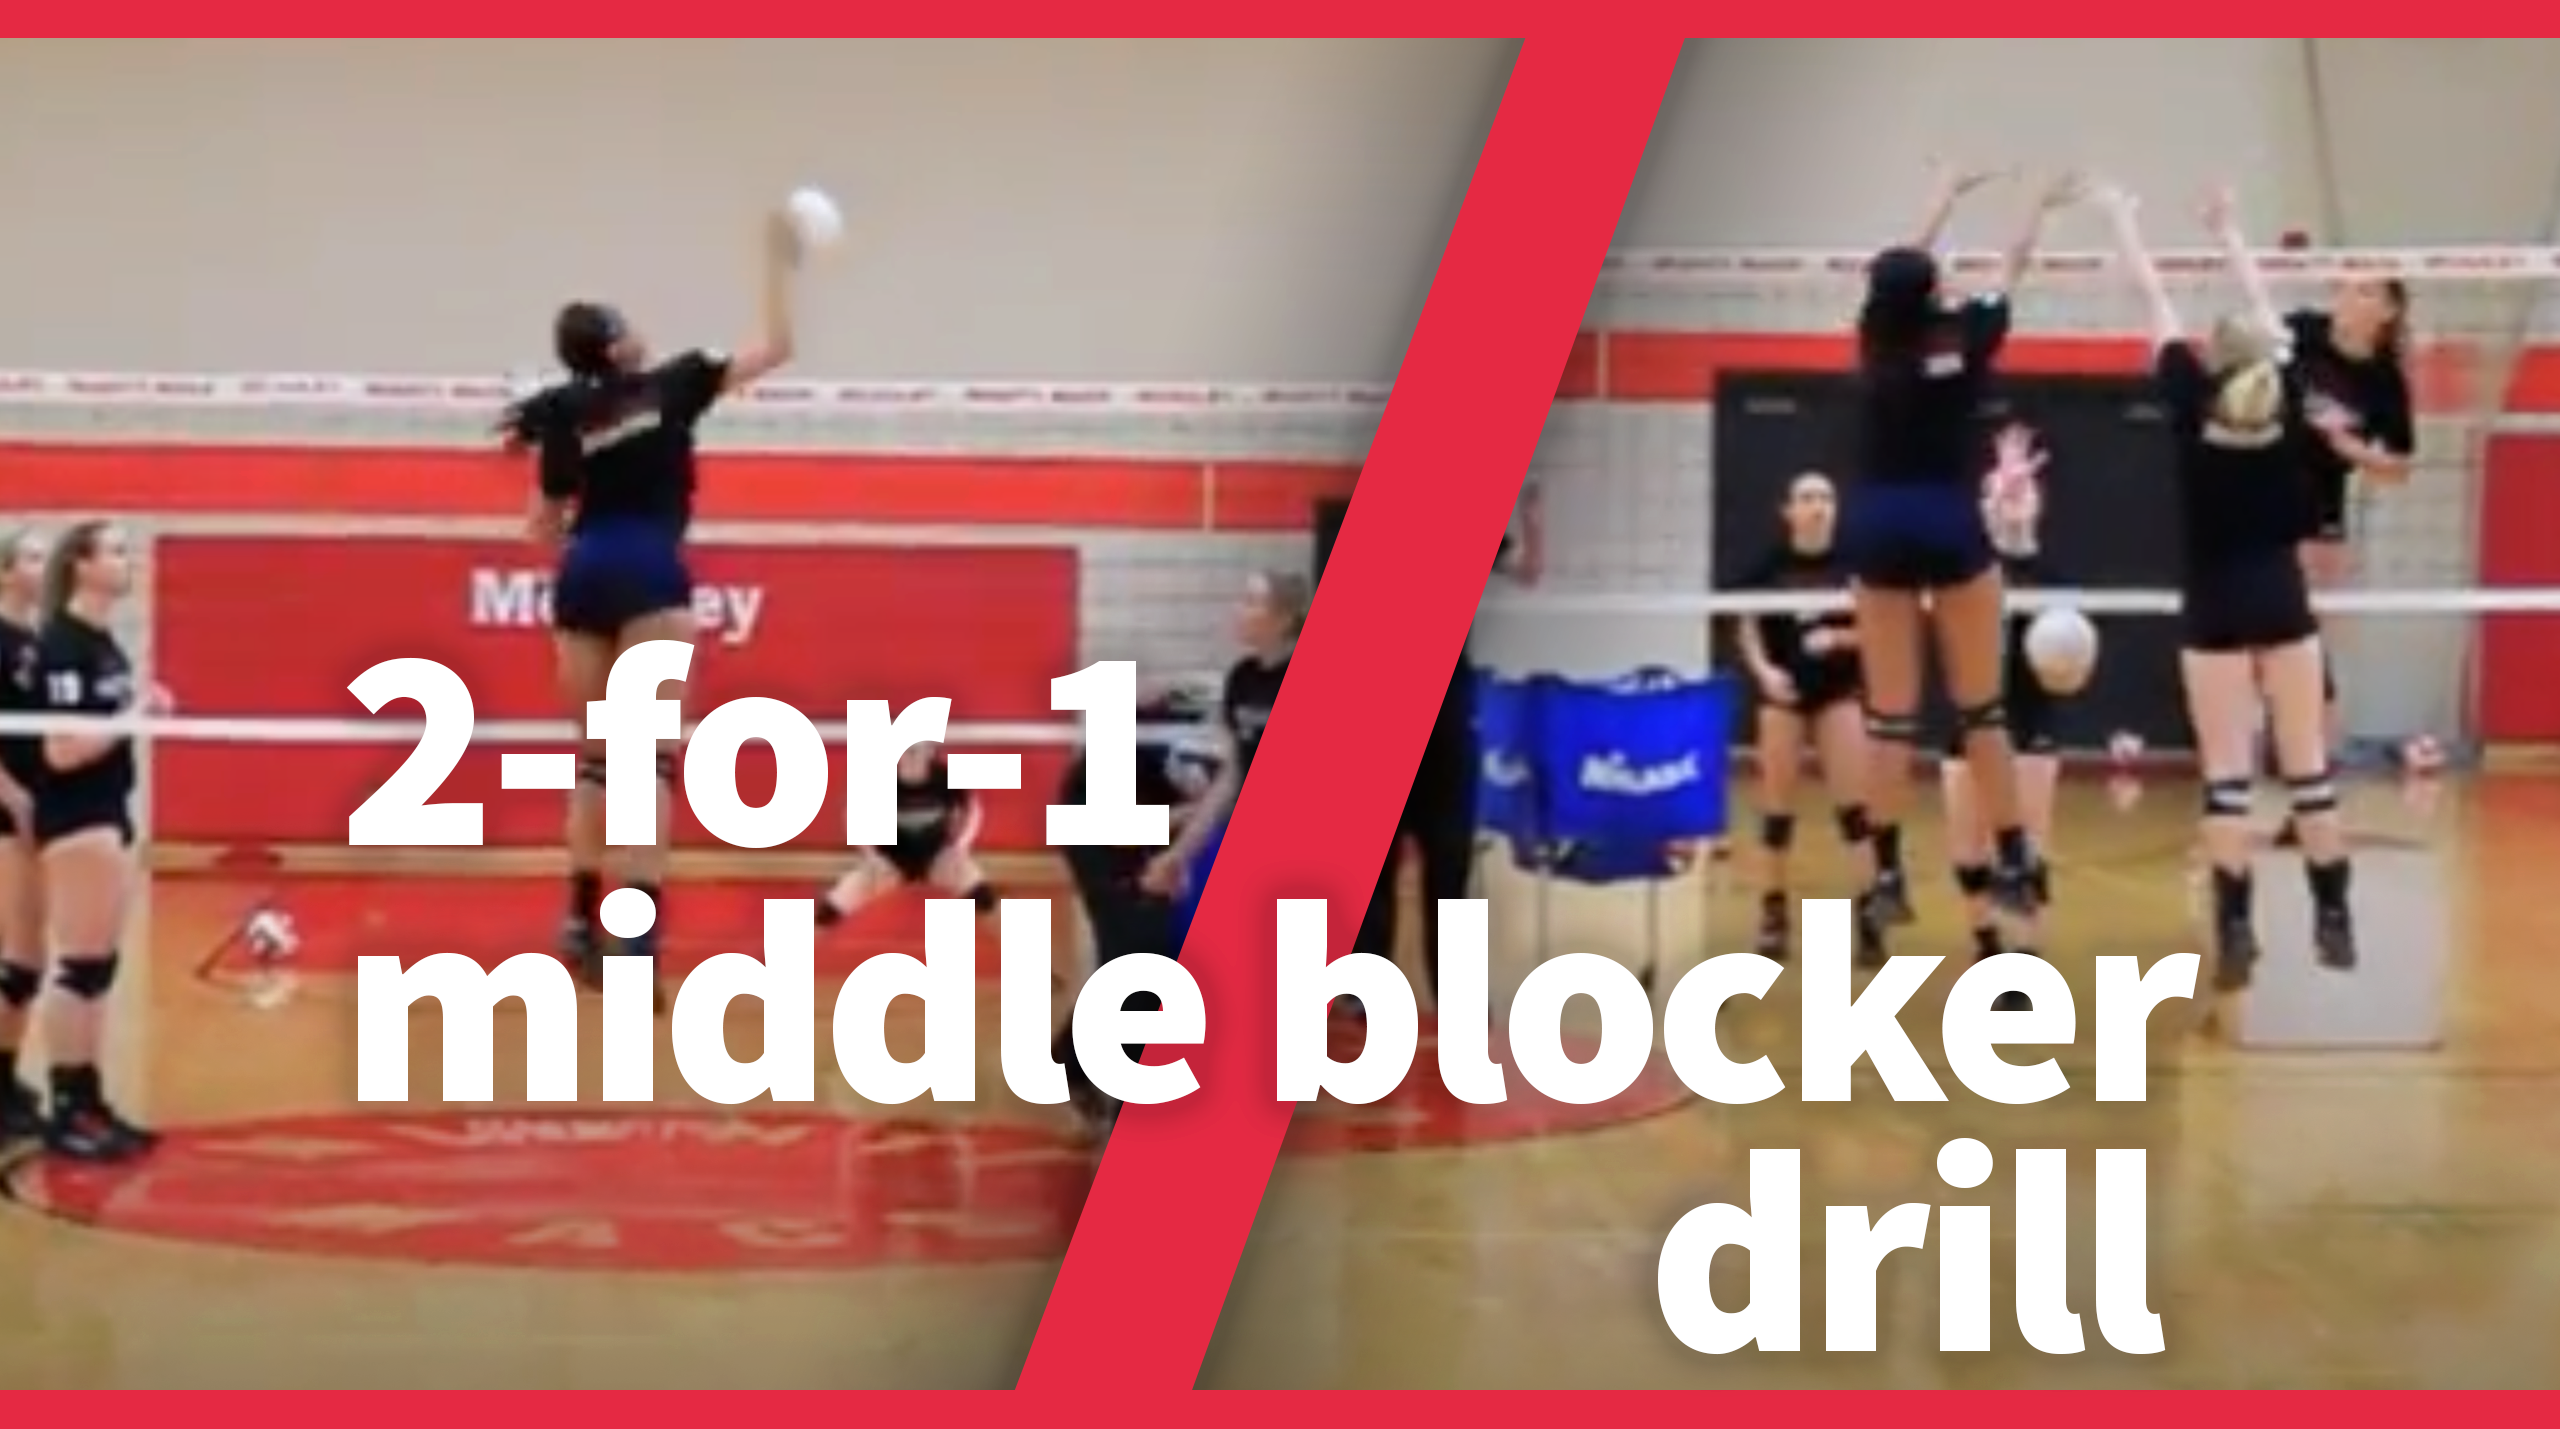 Transition Middle Blocker Drill The Art Of Coaching Volleyball Volleyball Training Volleyball Workouts Volleyball Skills